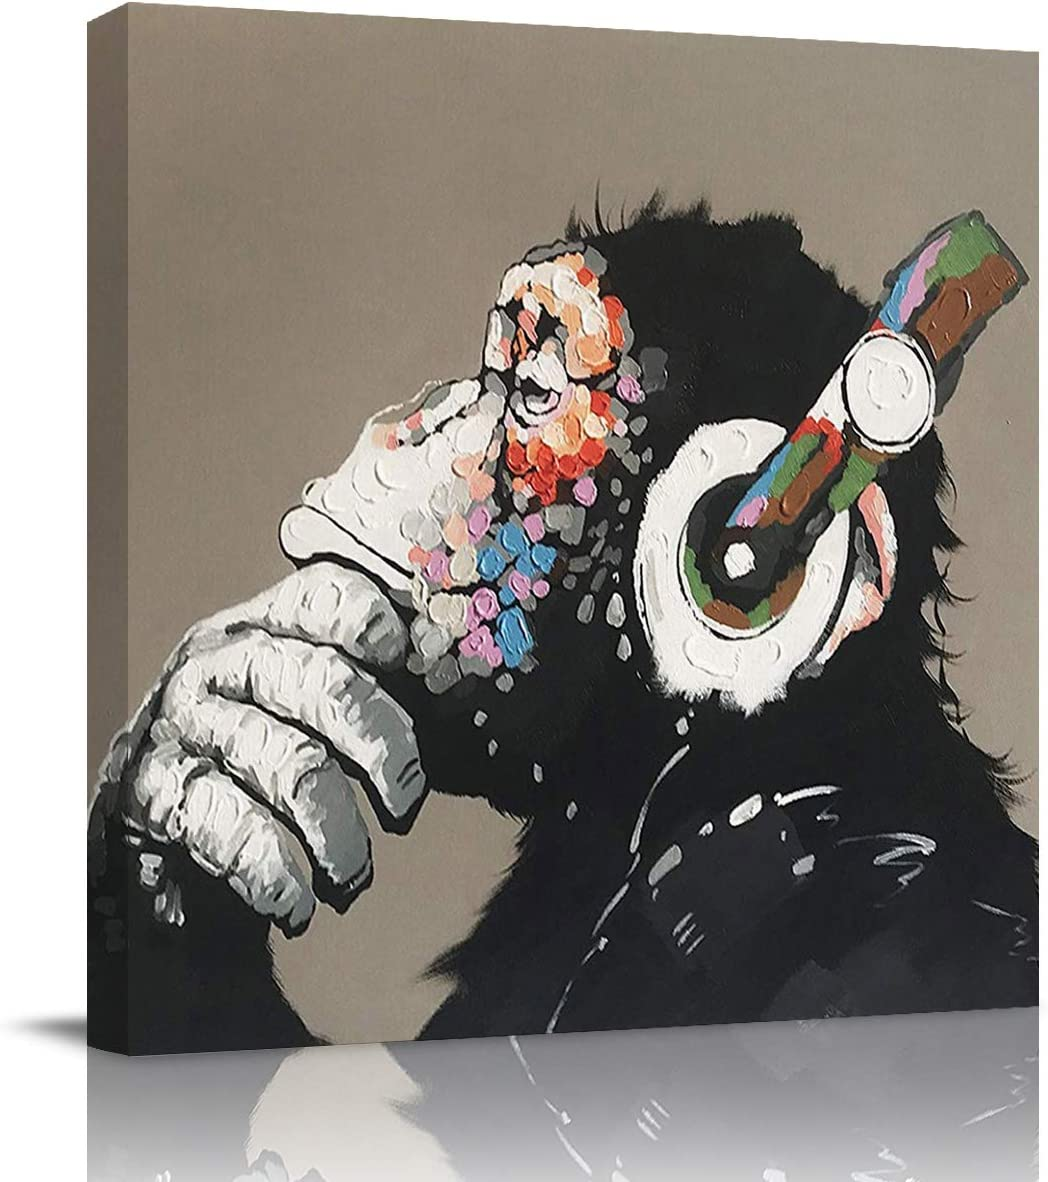 Canvas Wall Art Painting for Home Office Bathroom Decoration,Cool Ape Listening Music with Headphone Picture Giclee Print on Canvas Artworks,Framed,Ready to Hang,12x12in